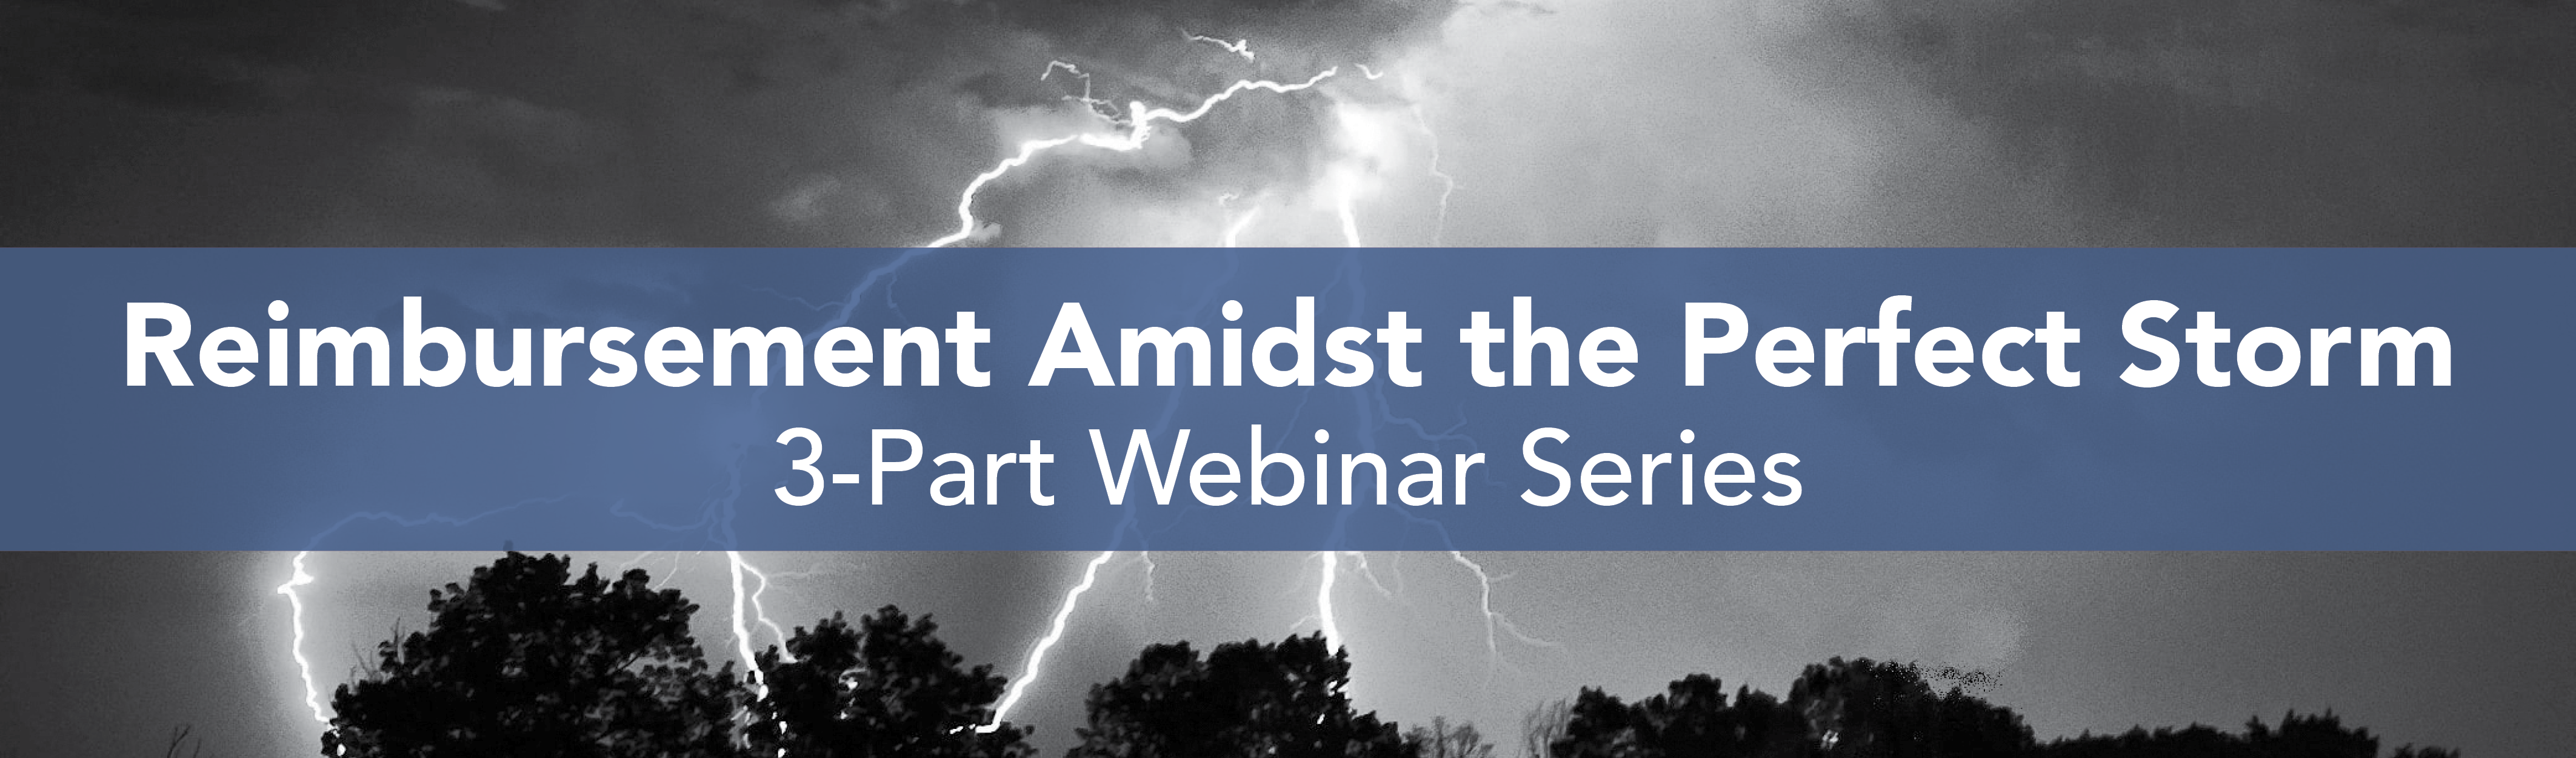 Reimbursement Strategies Webinar Series